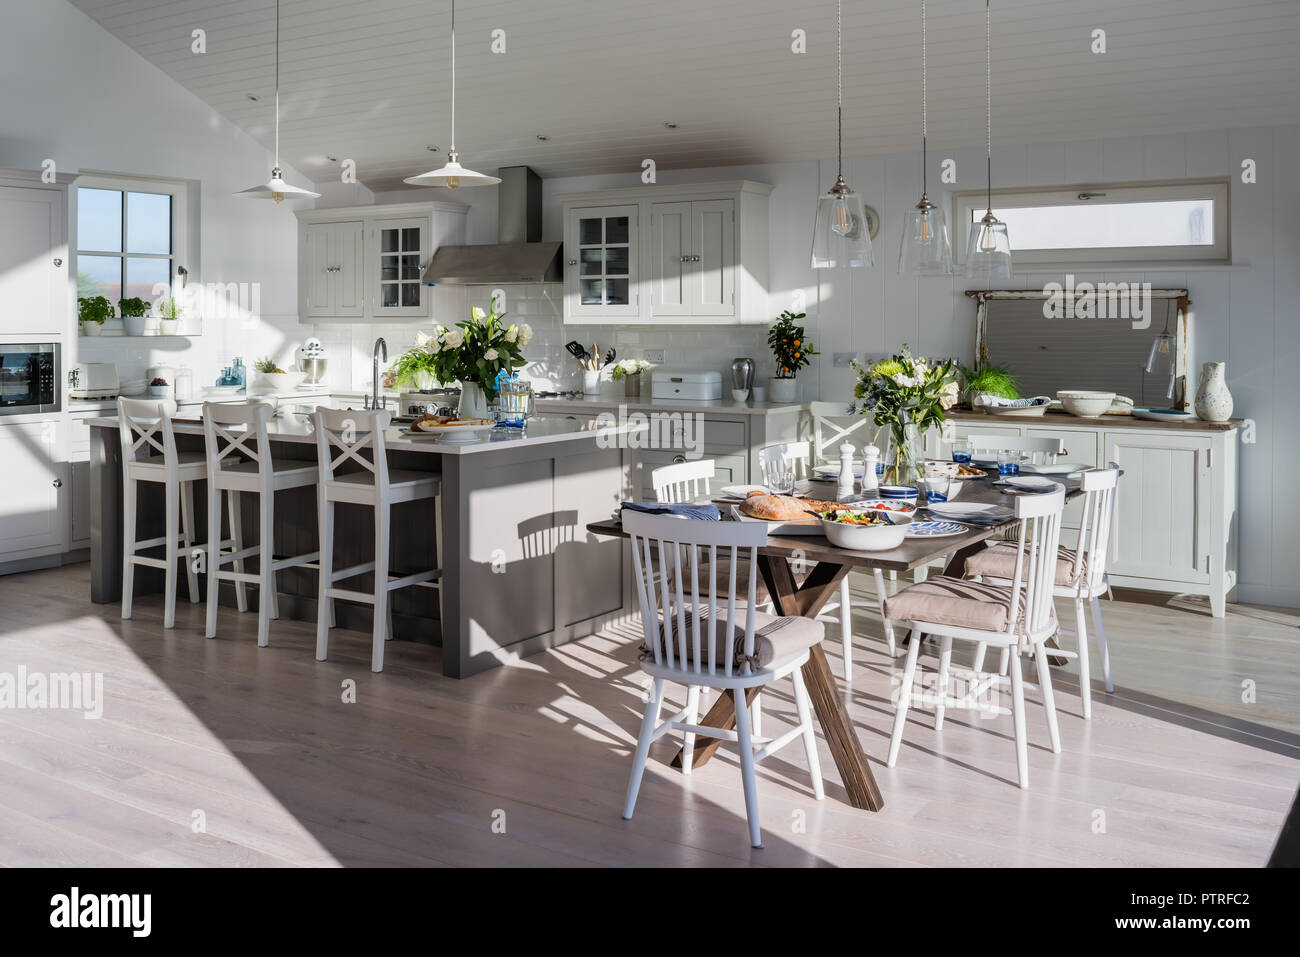 Open Plan Kitchen And Dining Room With Sea Views Bar Stools At Island Unit  With Dining Table And Chairs In Sunlit Coastal Home